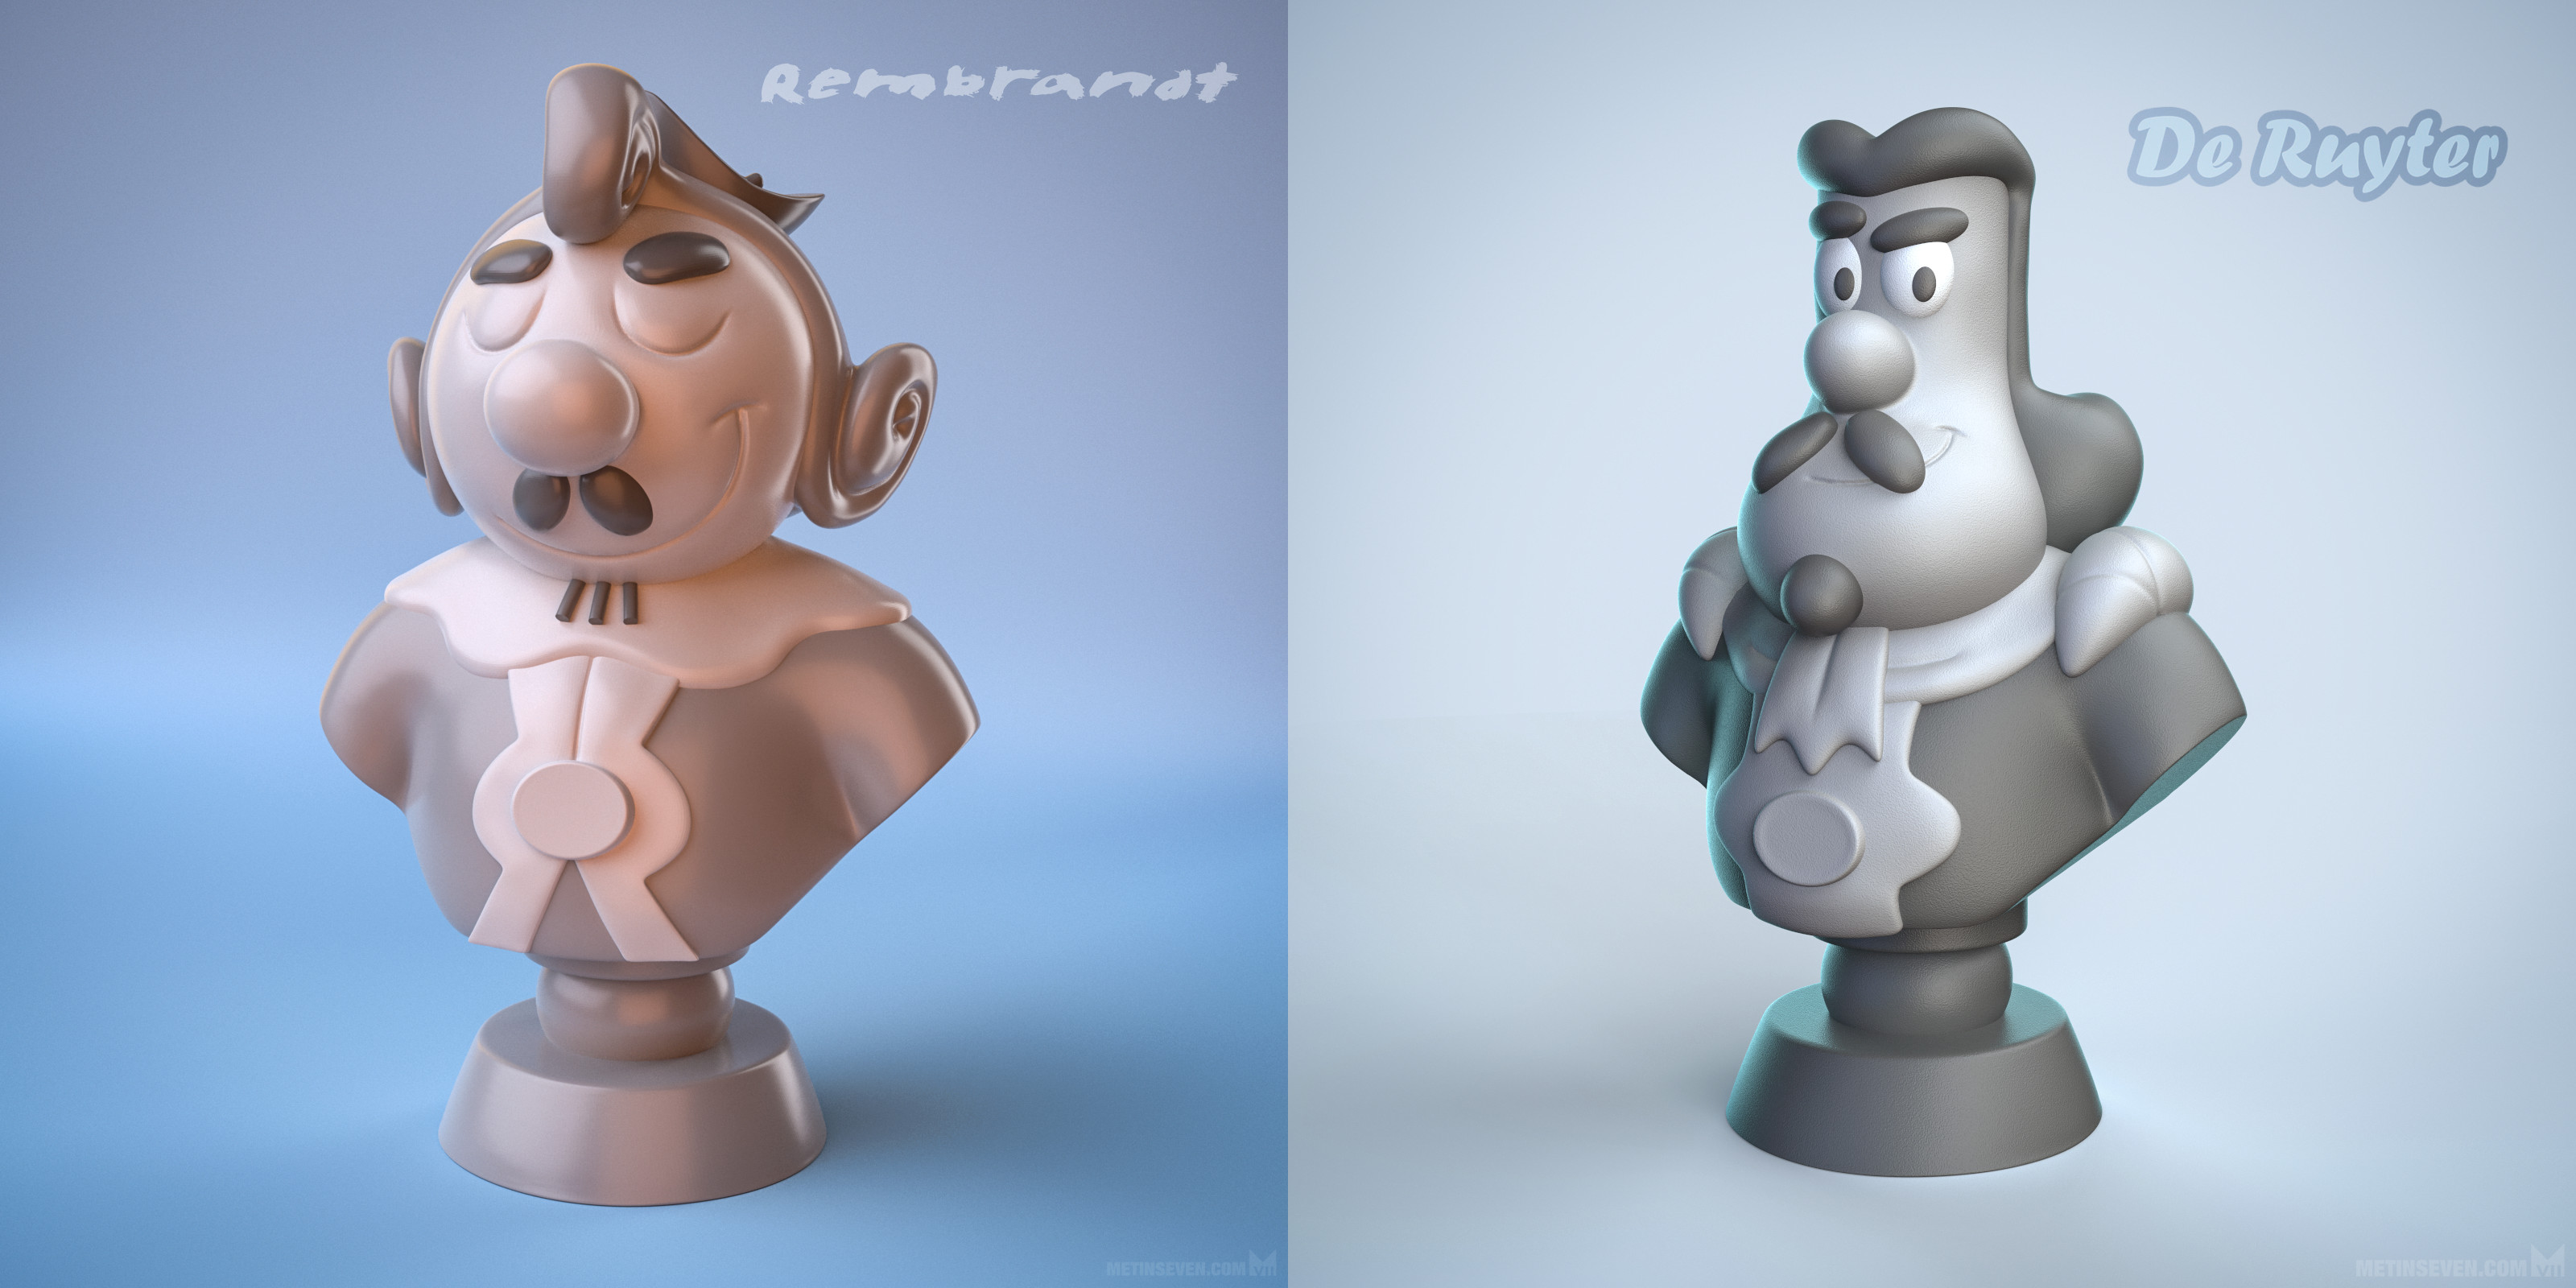 3D-printed bust statues of comic characters based on the painter Rembrandt and admiral De Ruyter